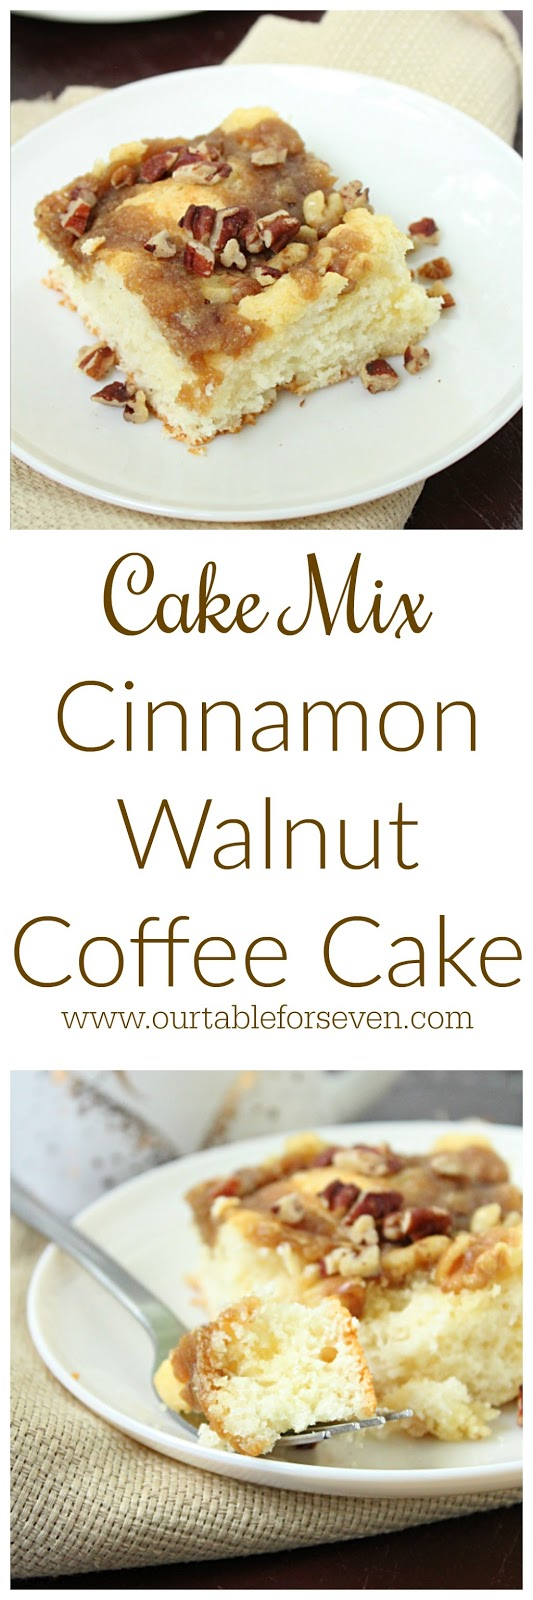 Cake Mix Cinnamon Walnut Coffee Cake from Table for Seven:A quick and delicious coffee cake that starts with a cake mix!